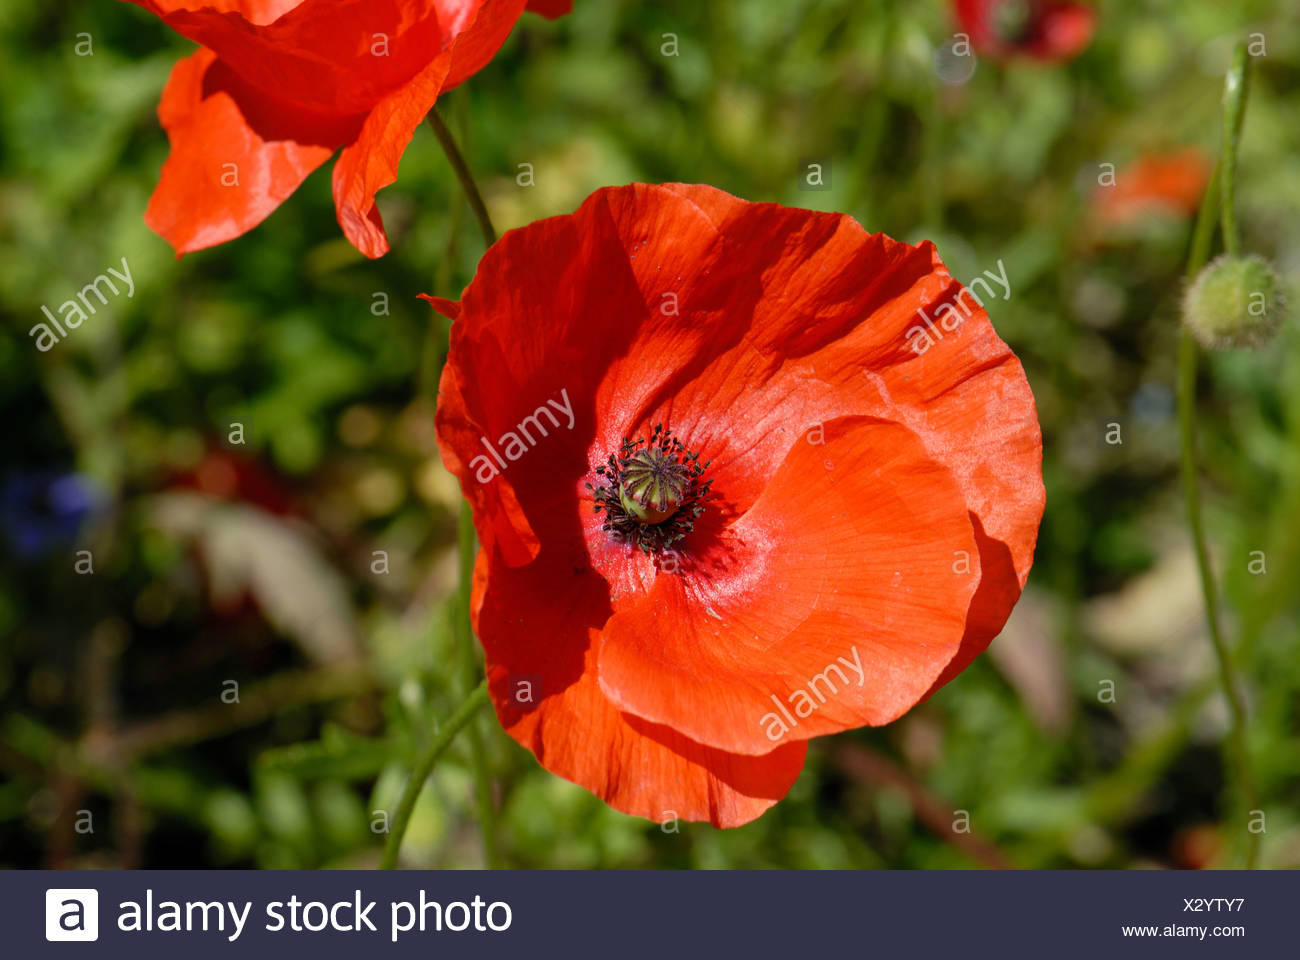 Long headed poppy Papaver dubium flower - Stock Image